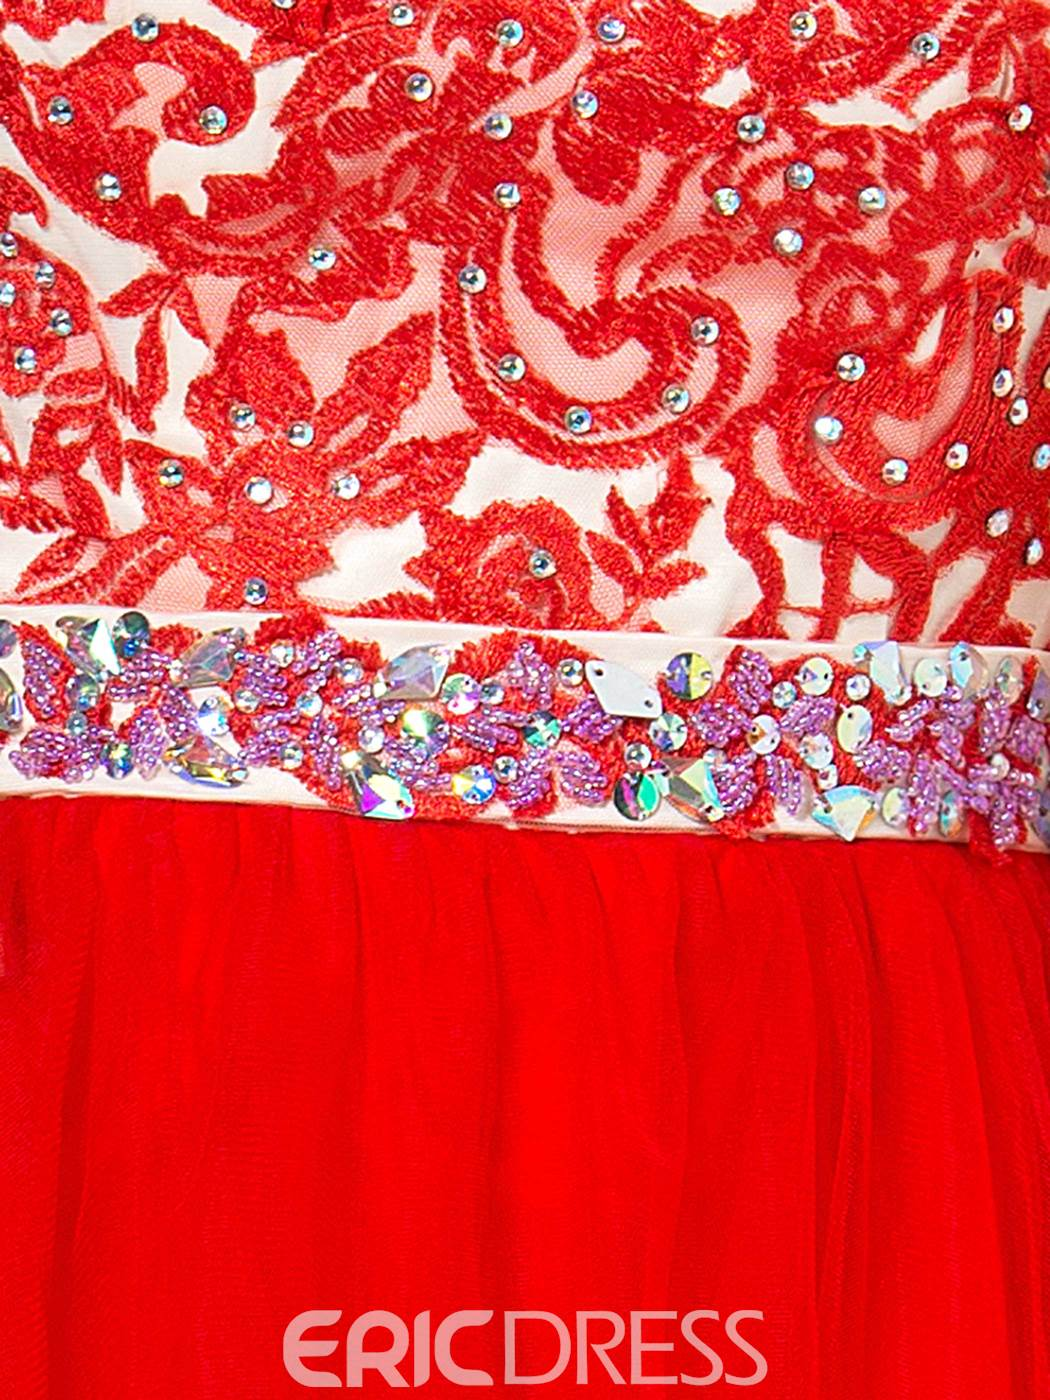 Ericdress Appliques Sequins Beaded Red Homecoming Dress